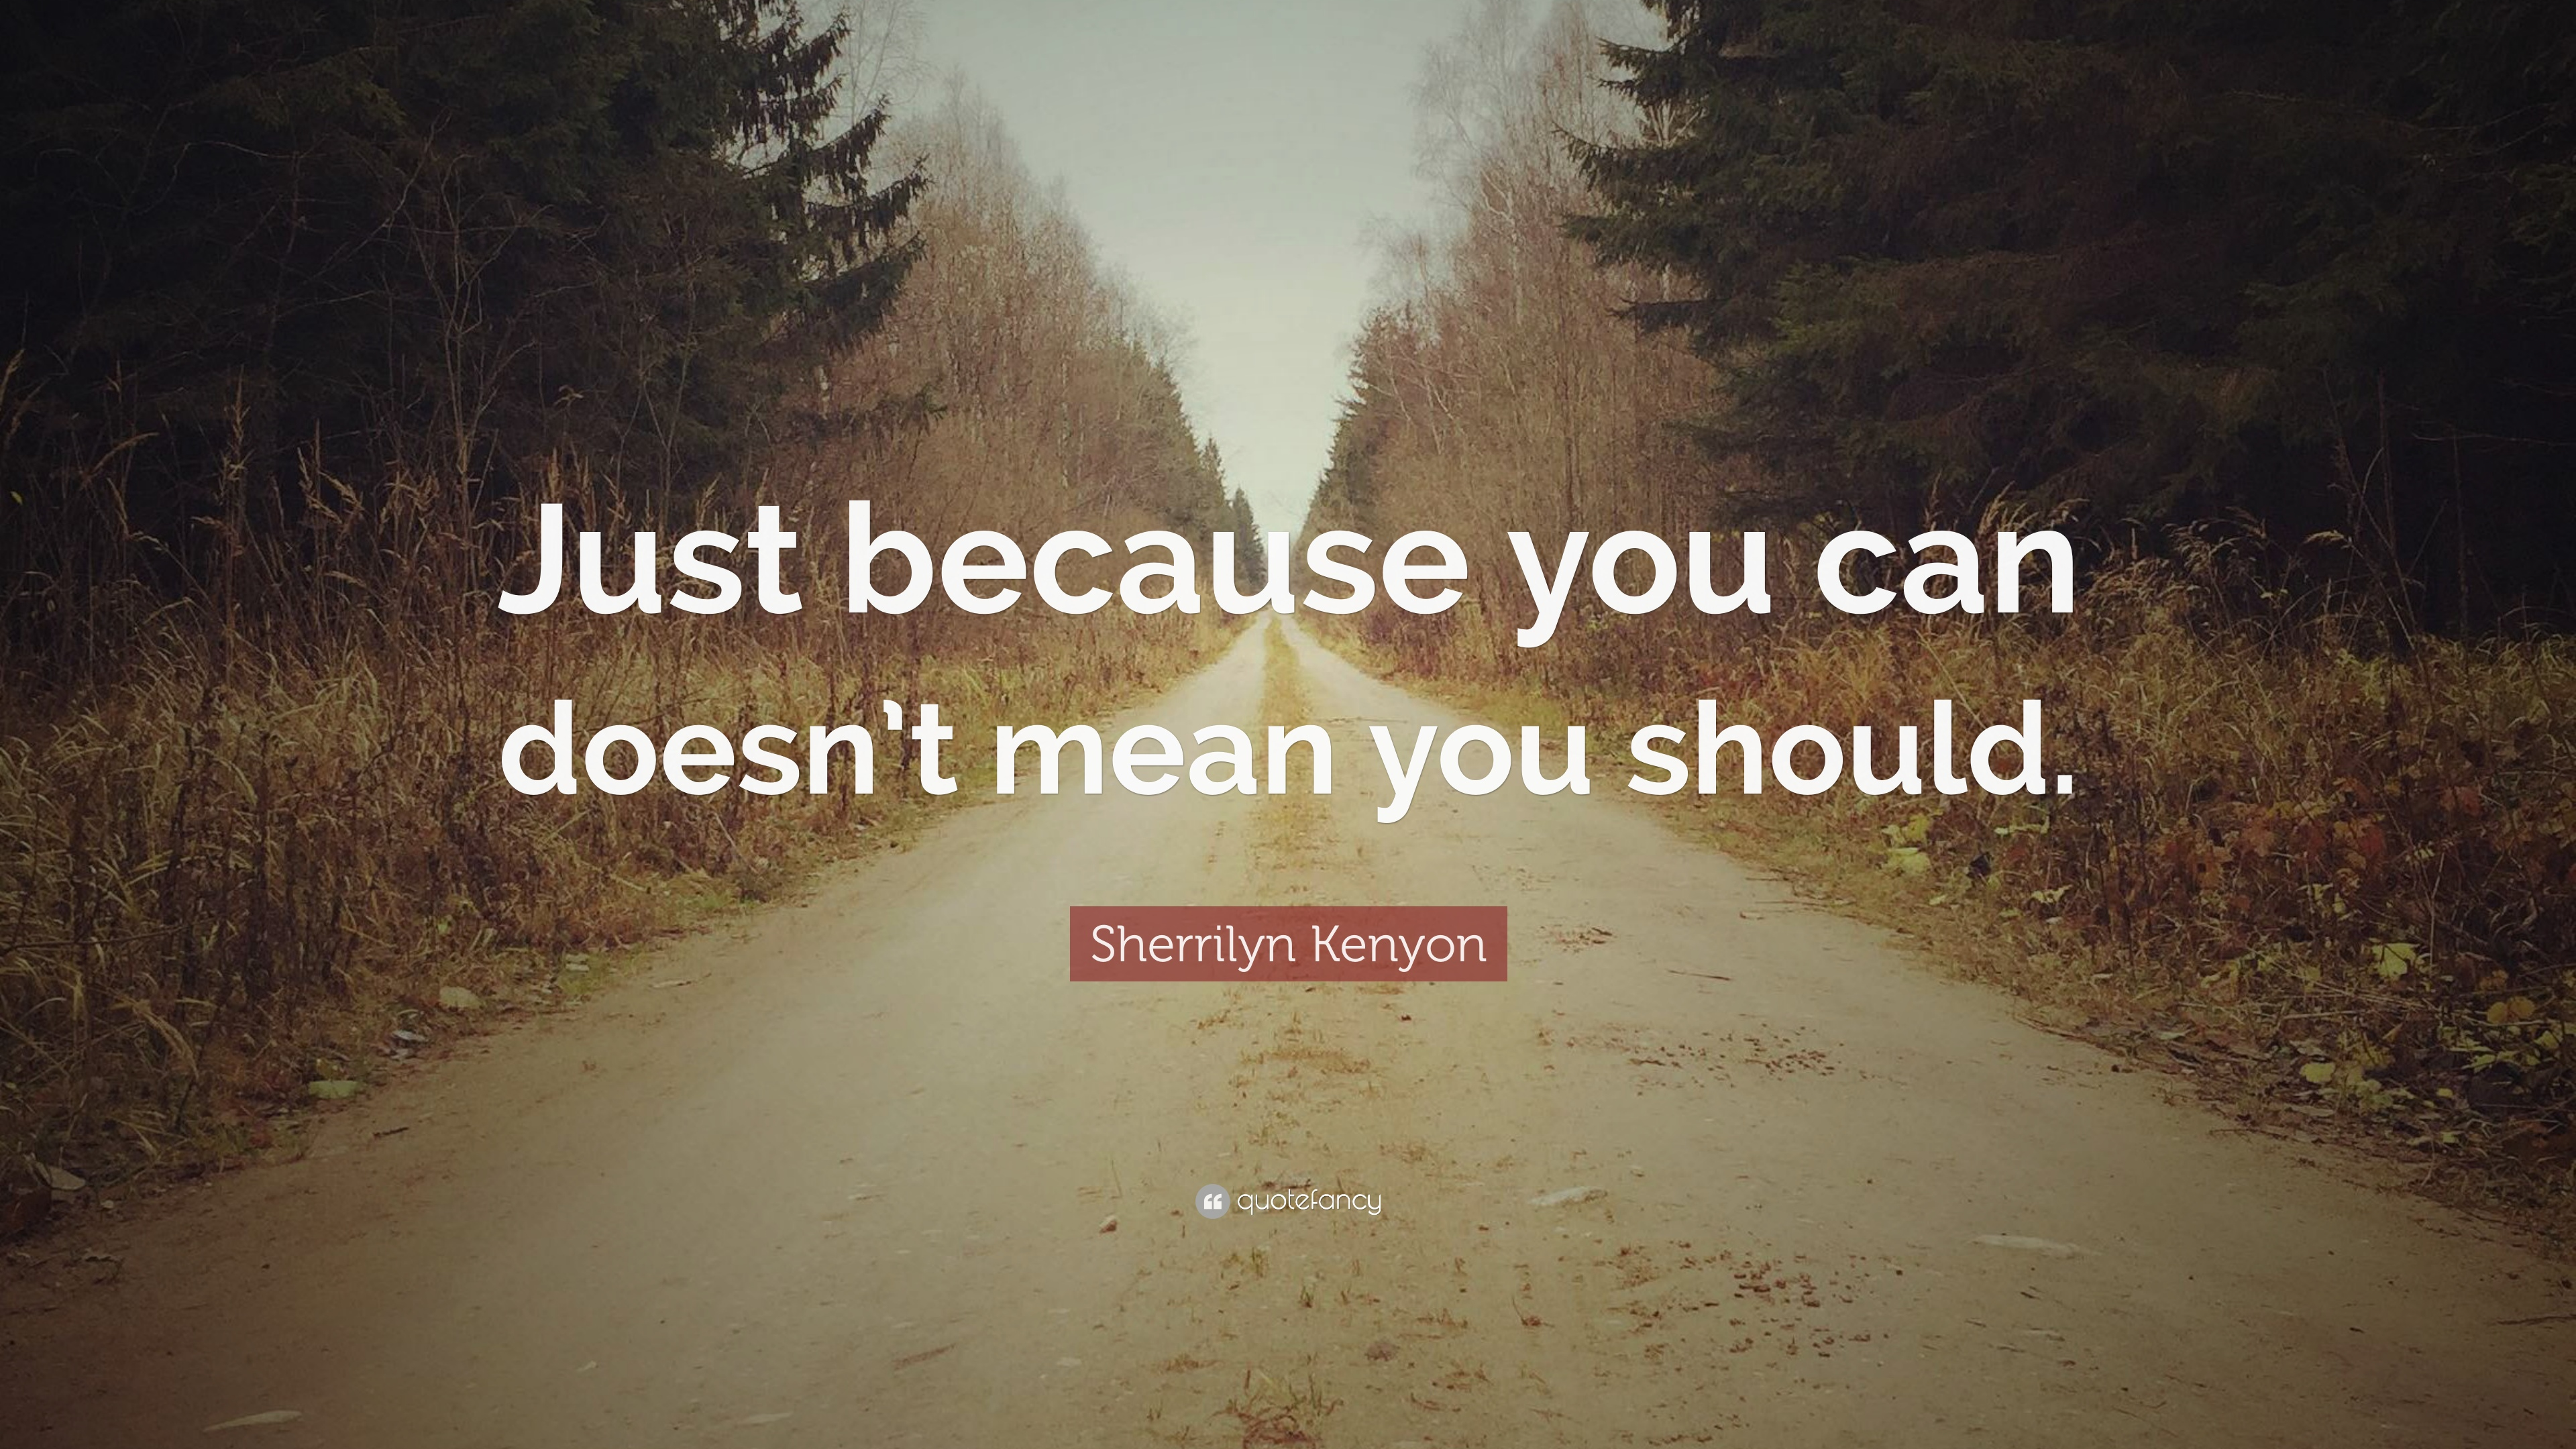 Sherrilyn Kenyon Quote: Just because you can doesnt mean